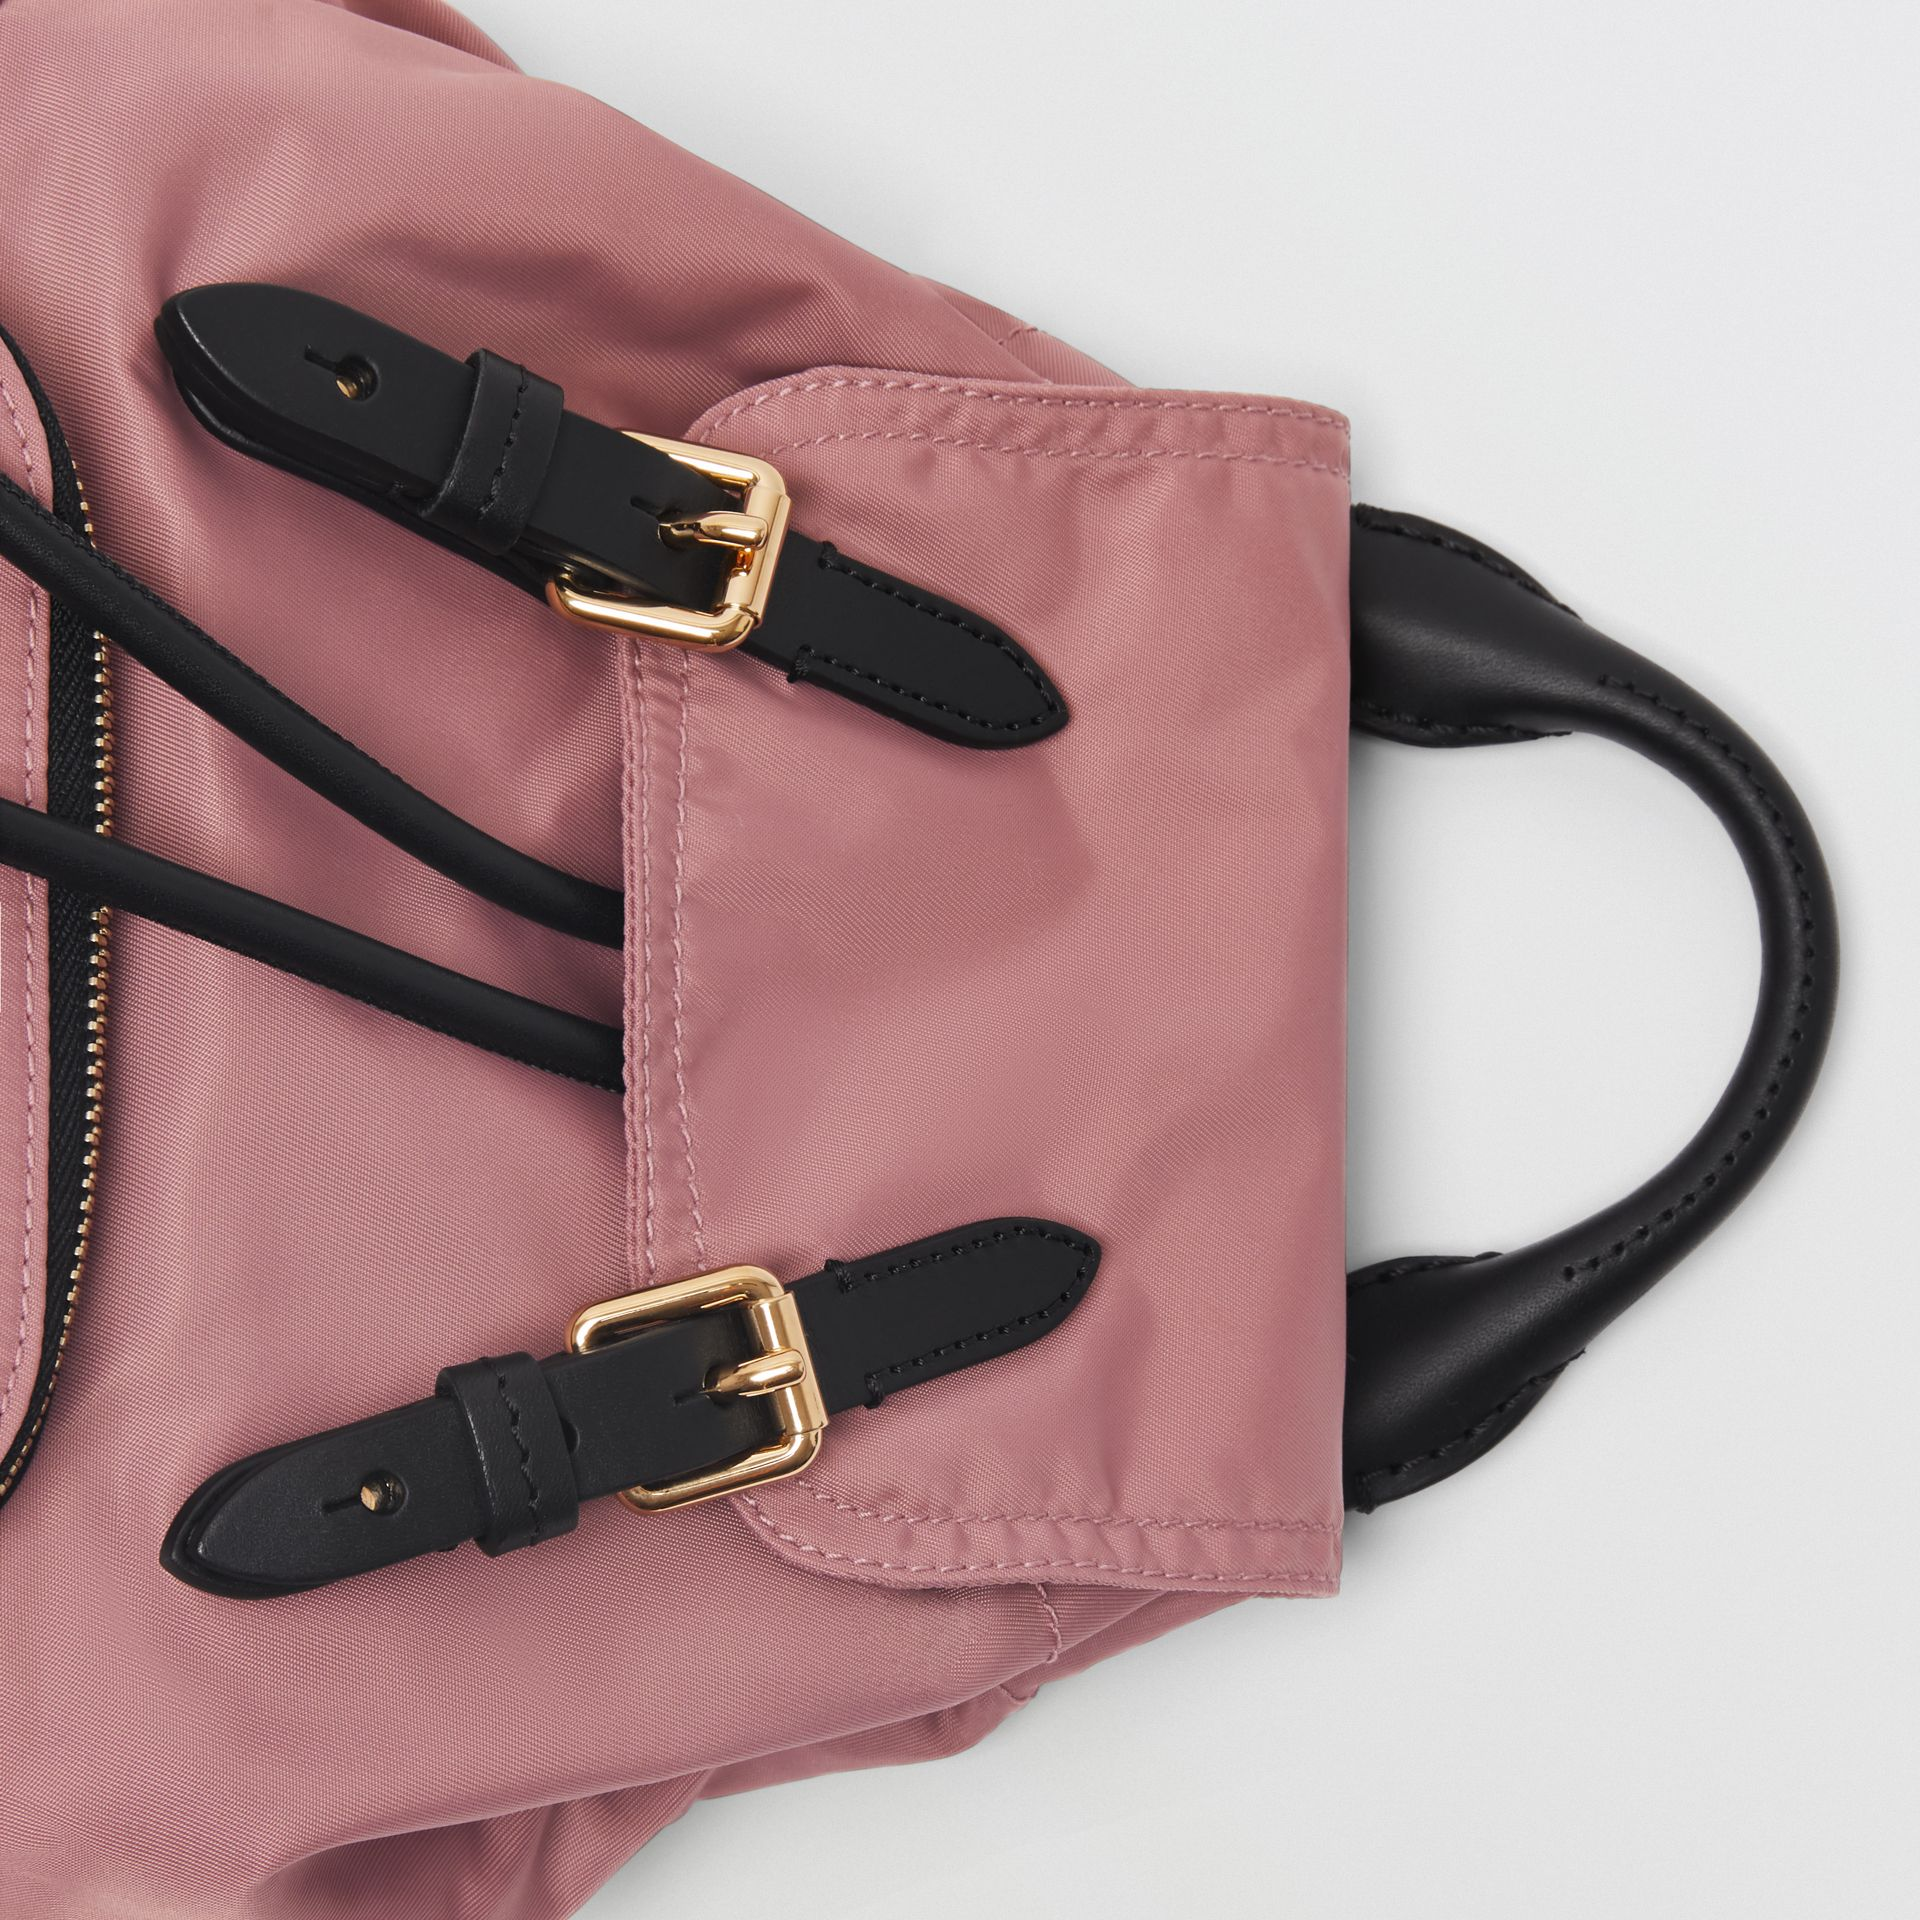 The Small Crossbody Rucksack in Nylon in Mauve Pink - Women | Burberry - gallery image 1